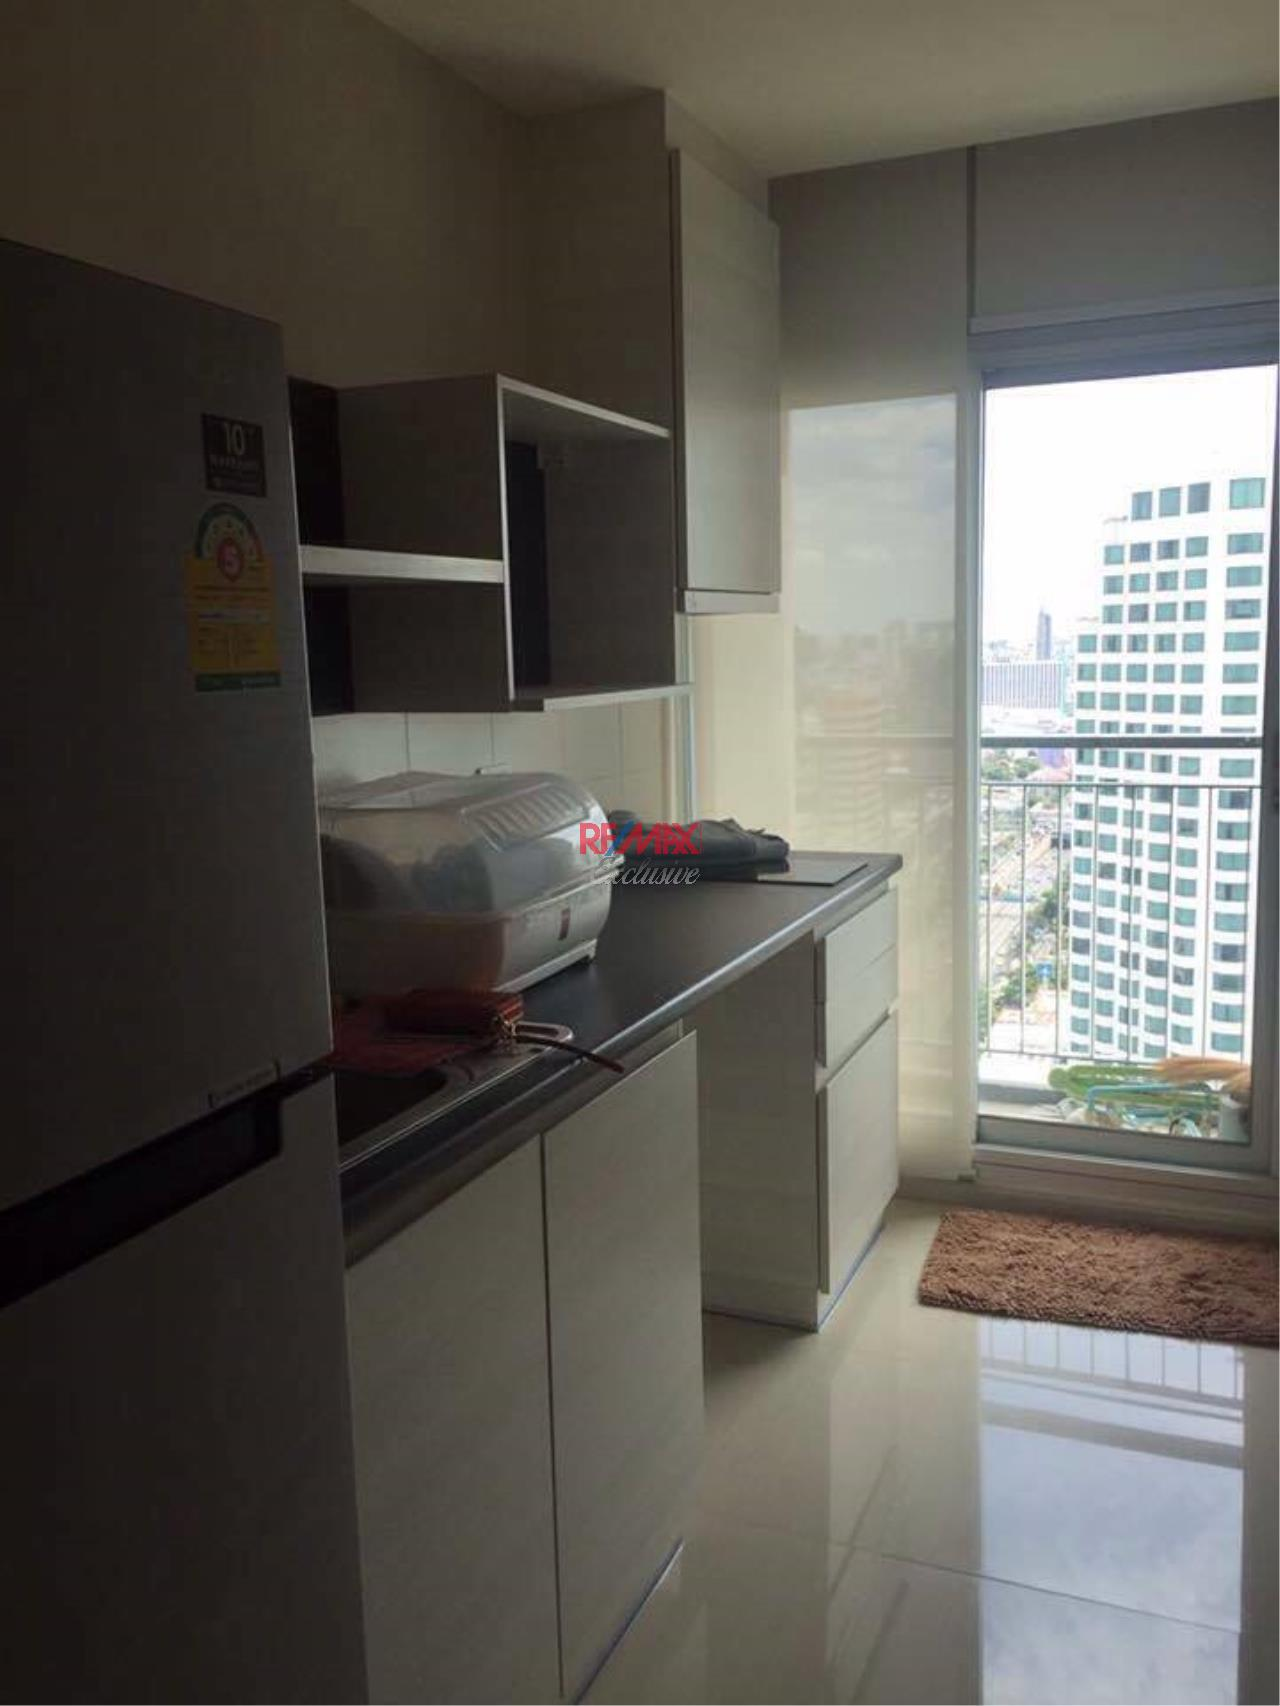 RE/MAX Exclusive Agency's Trendy 1 bedroom for sale @Life Ratchada - Huay Kwang 7